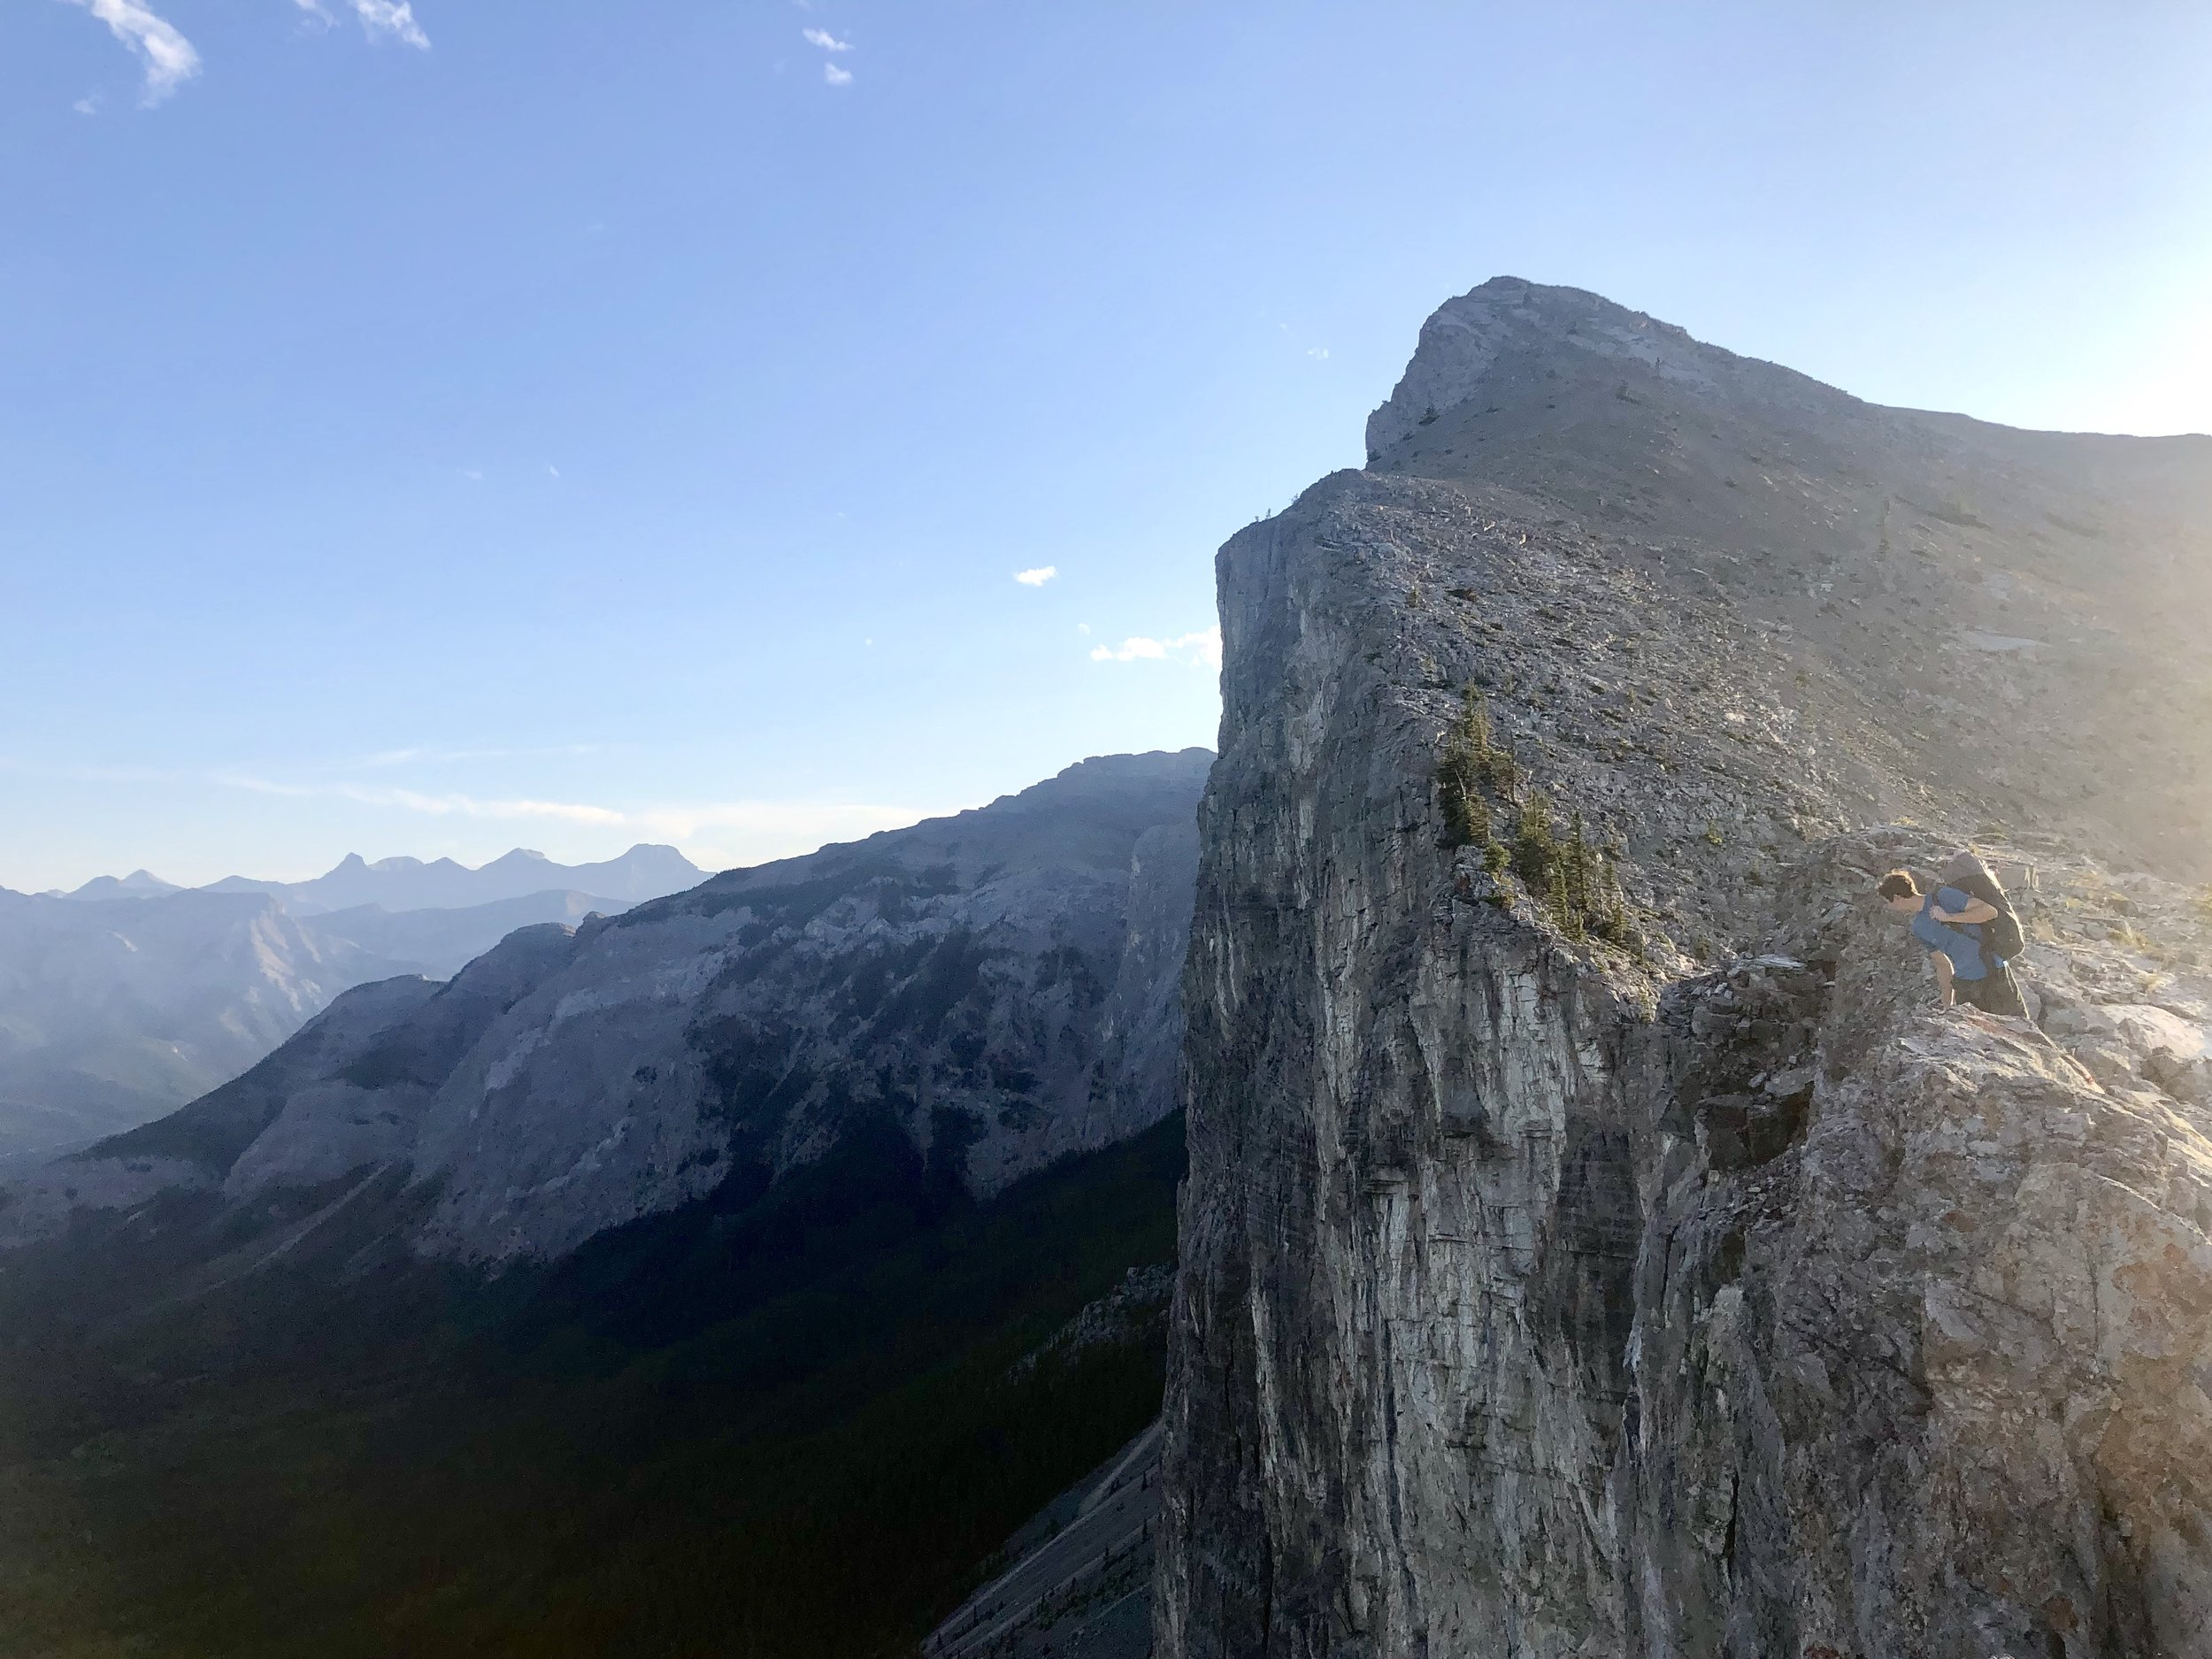 Mike looking over the edge of Yamnuska, where Blue Jeans tops out.